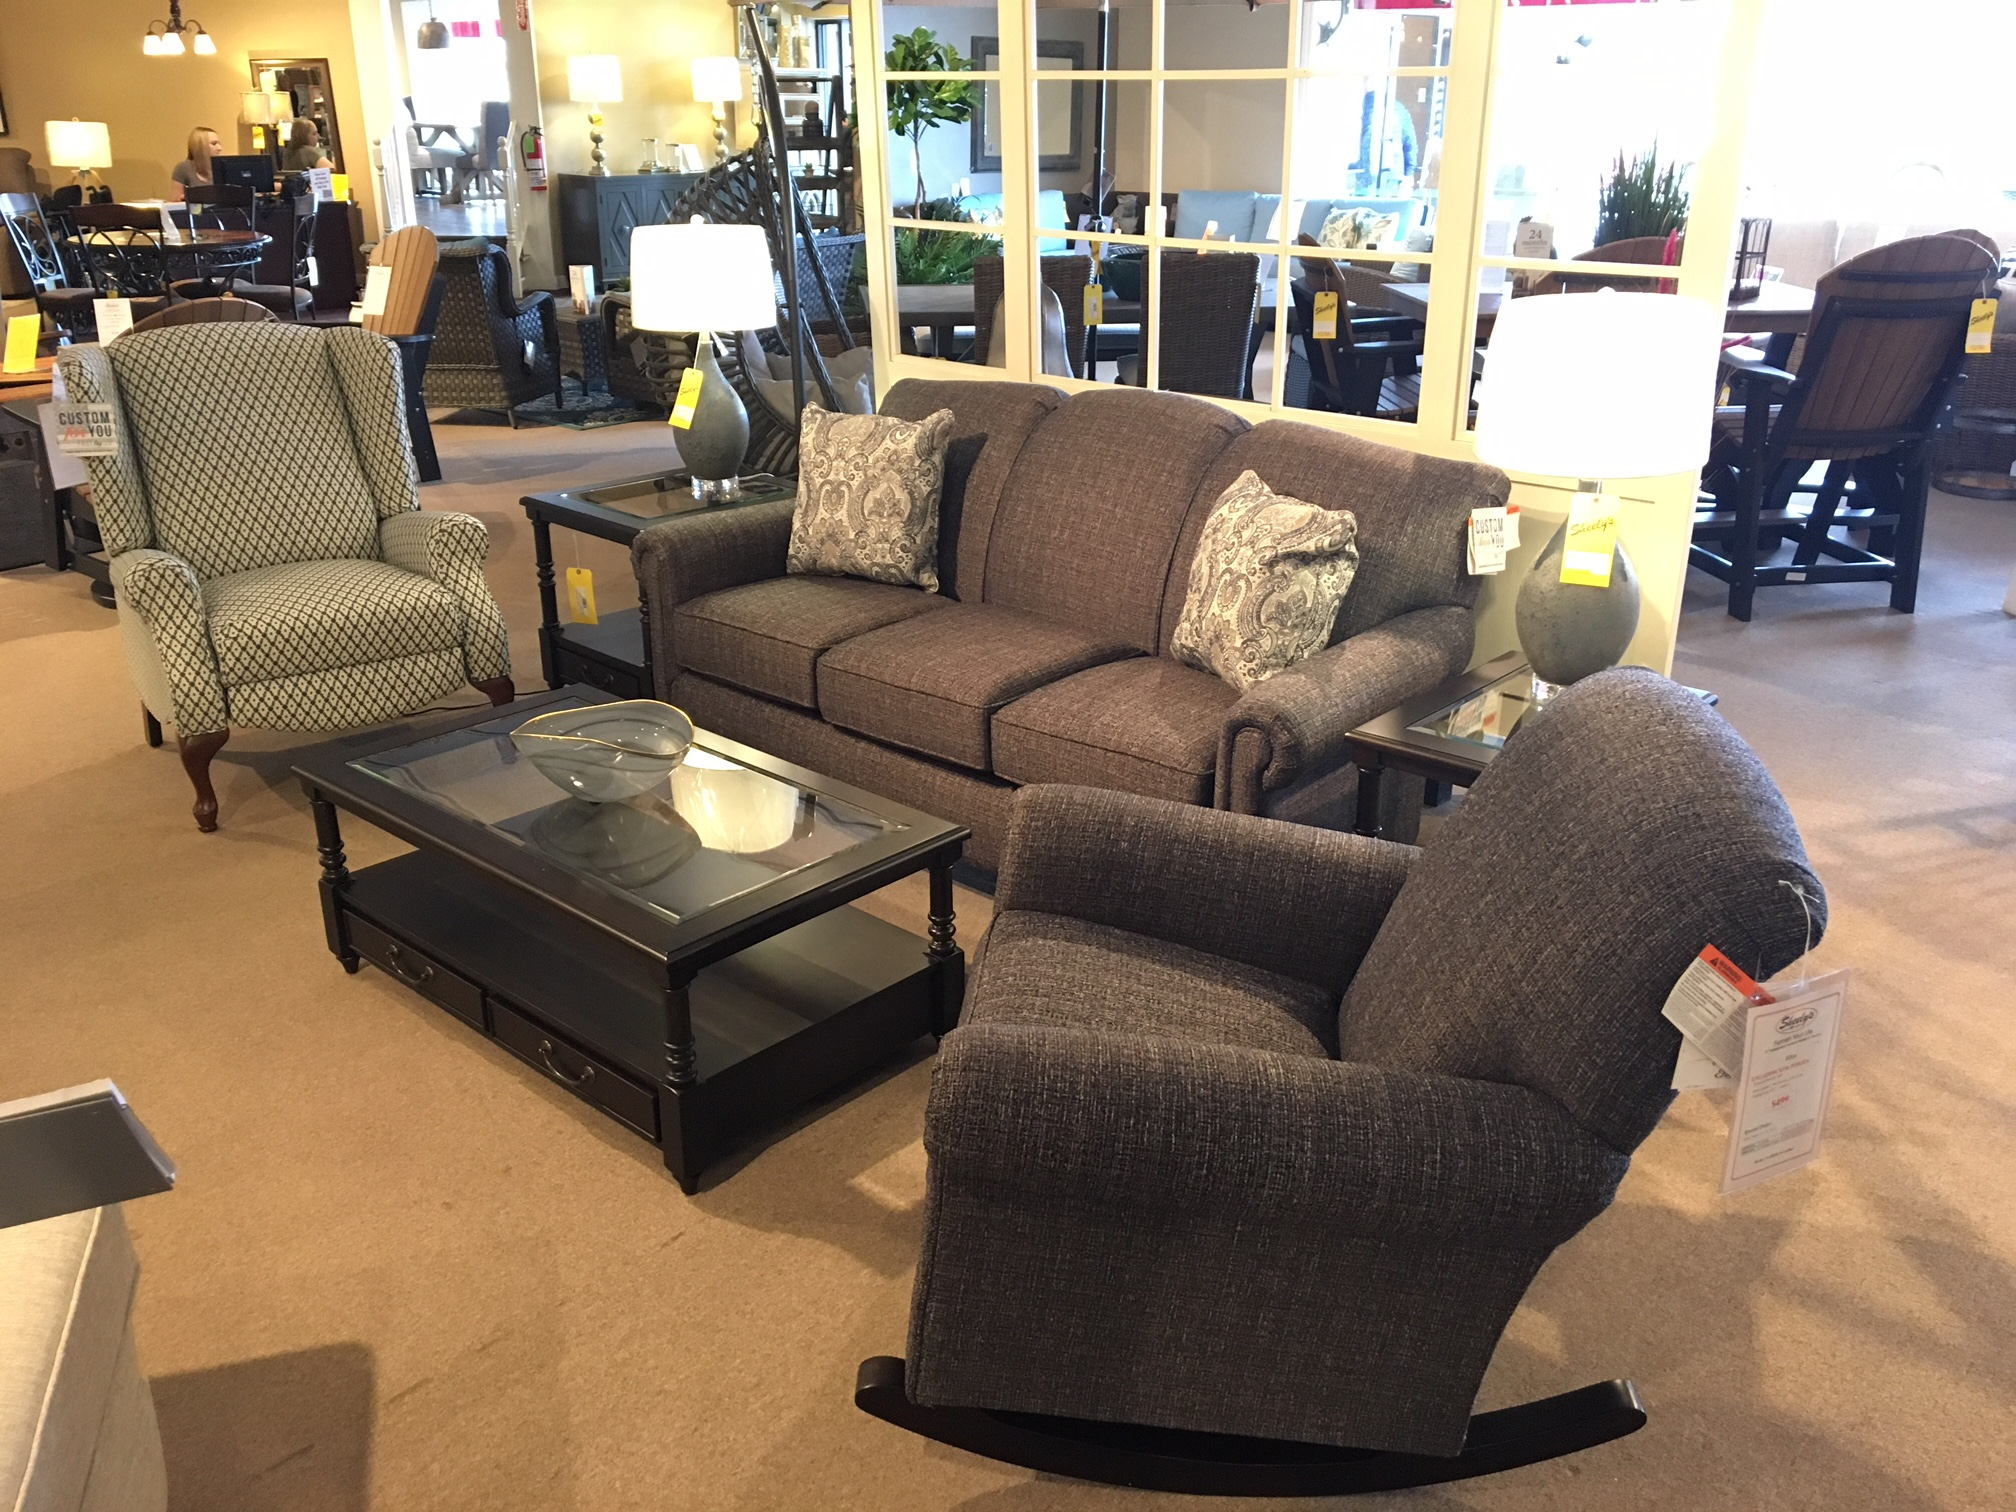 There Is Nothing Quite Like Walking Into A Furniture Store, Ready To  Purchase A Sofa That Will Become A Part Of Your Familyu0027s Daily Routine.  With Englandu0027s ...